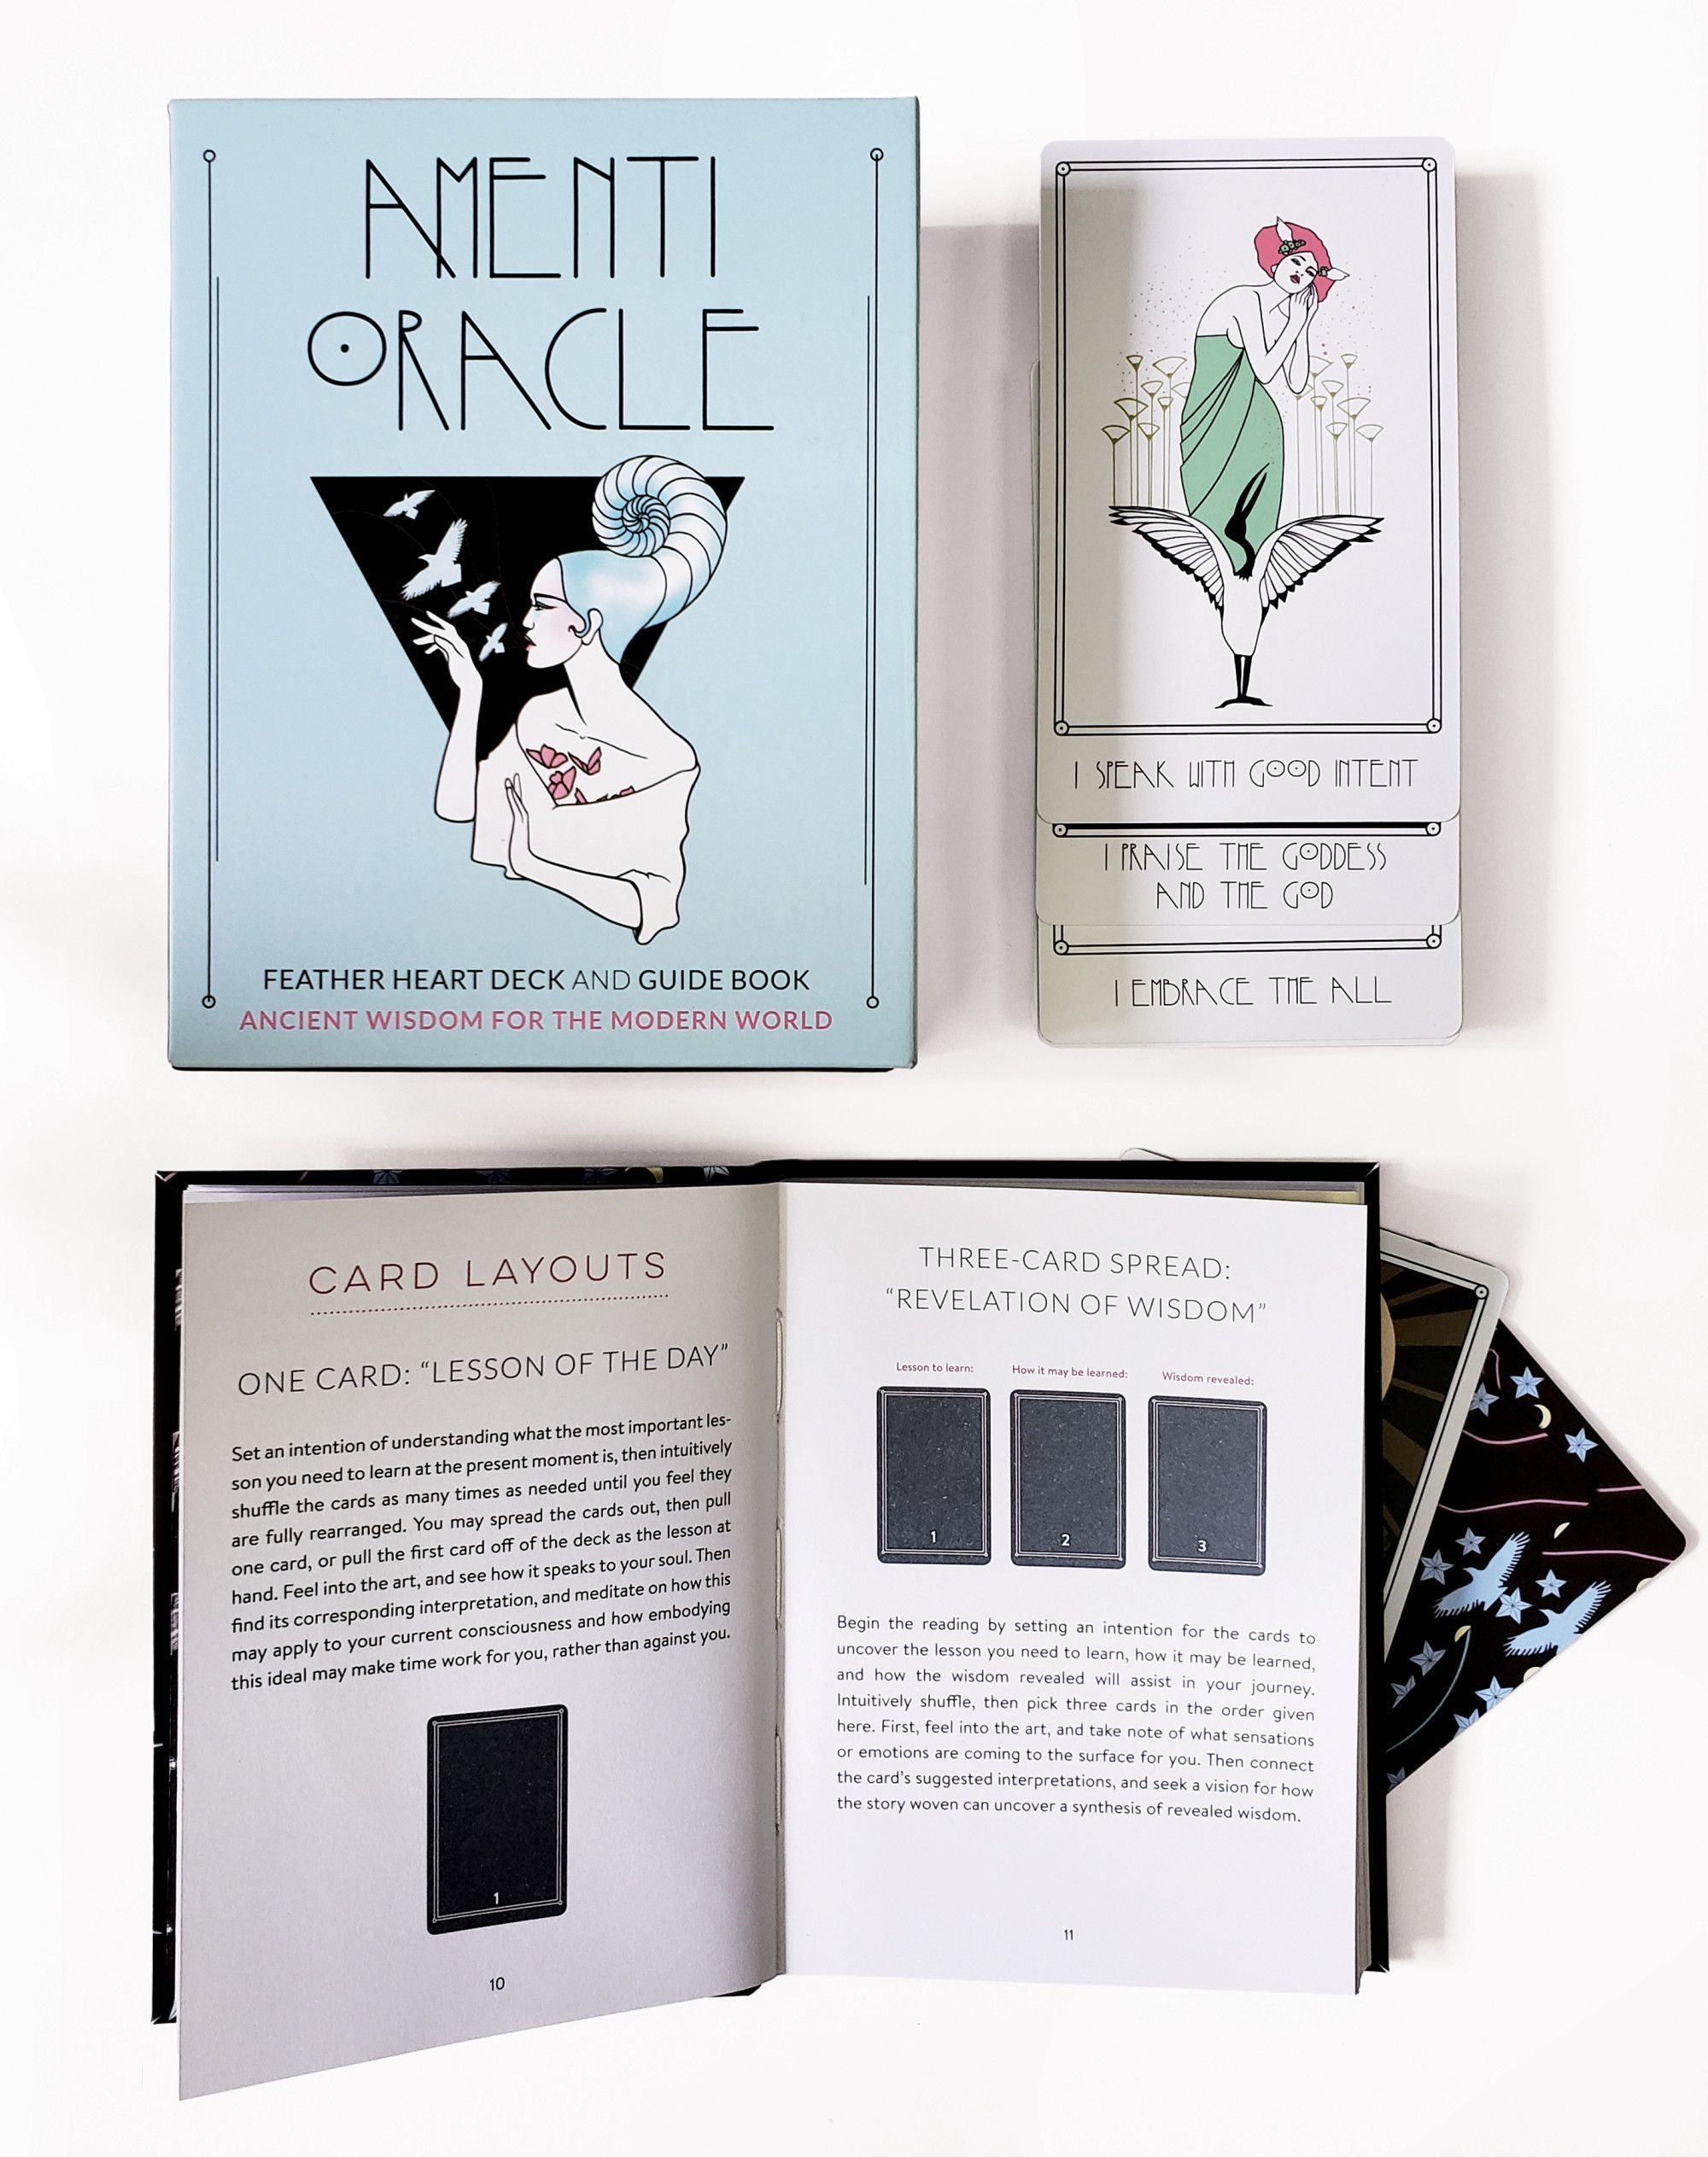 Amenti Oracle Feather Heart Deck And Guide Book Guide Book